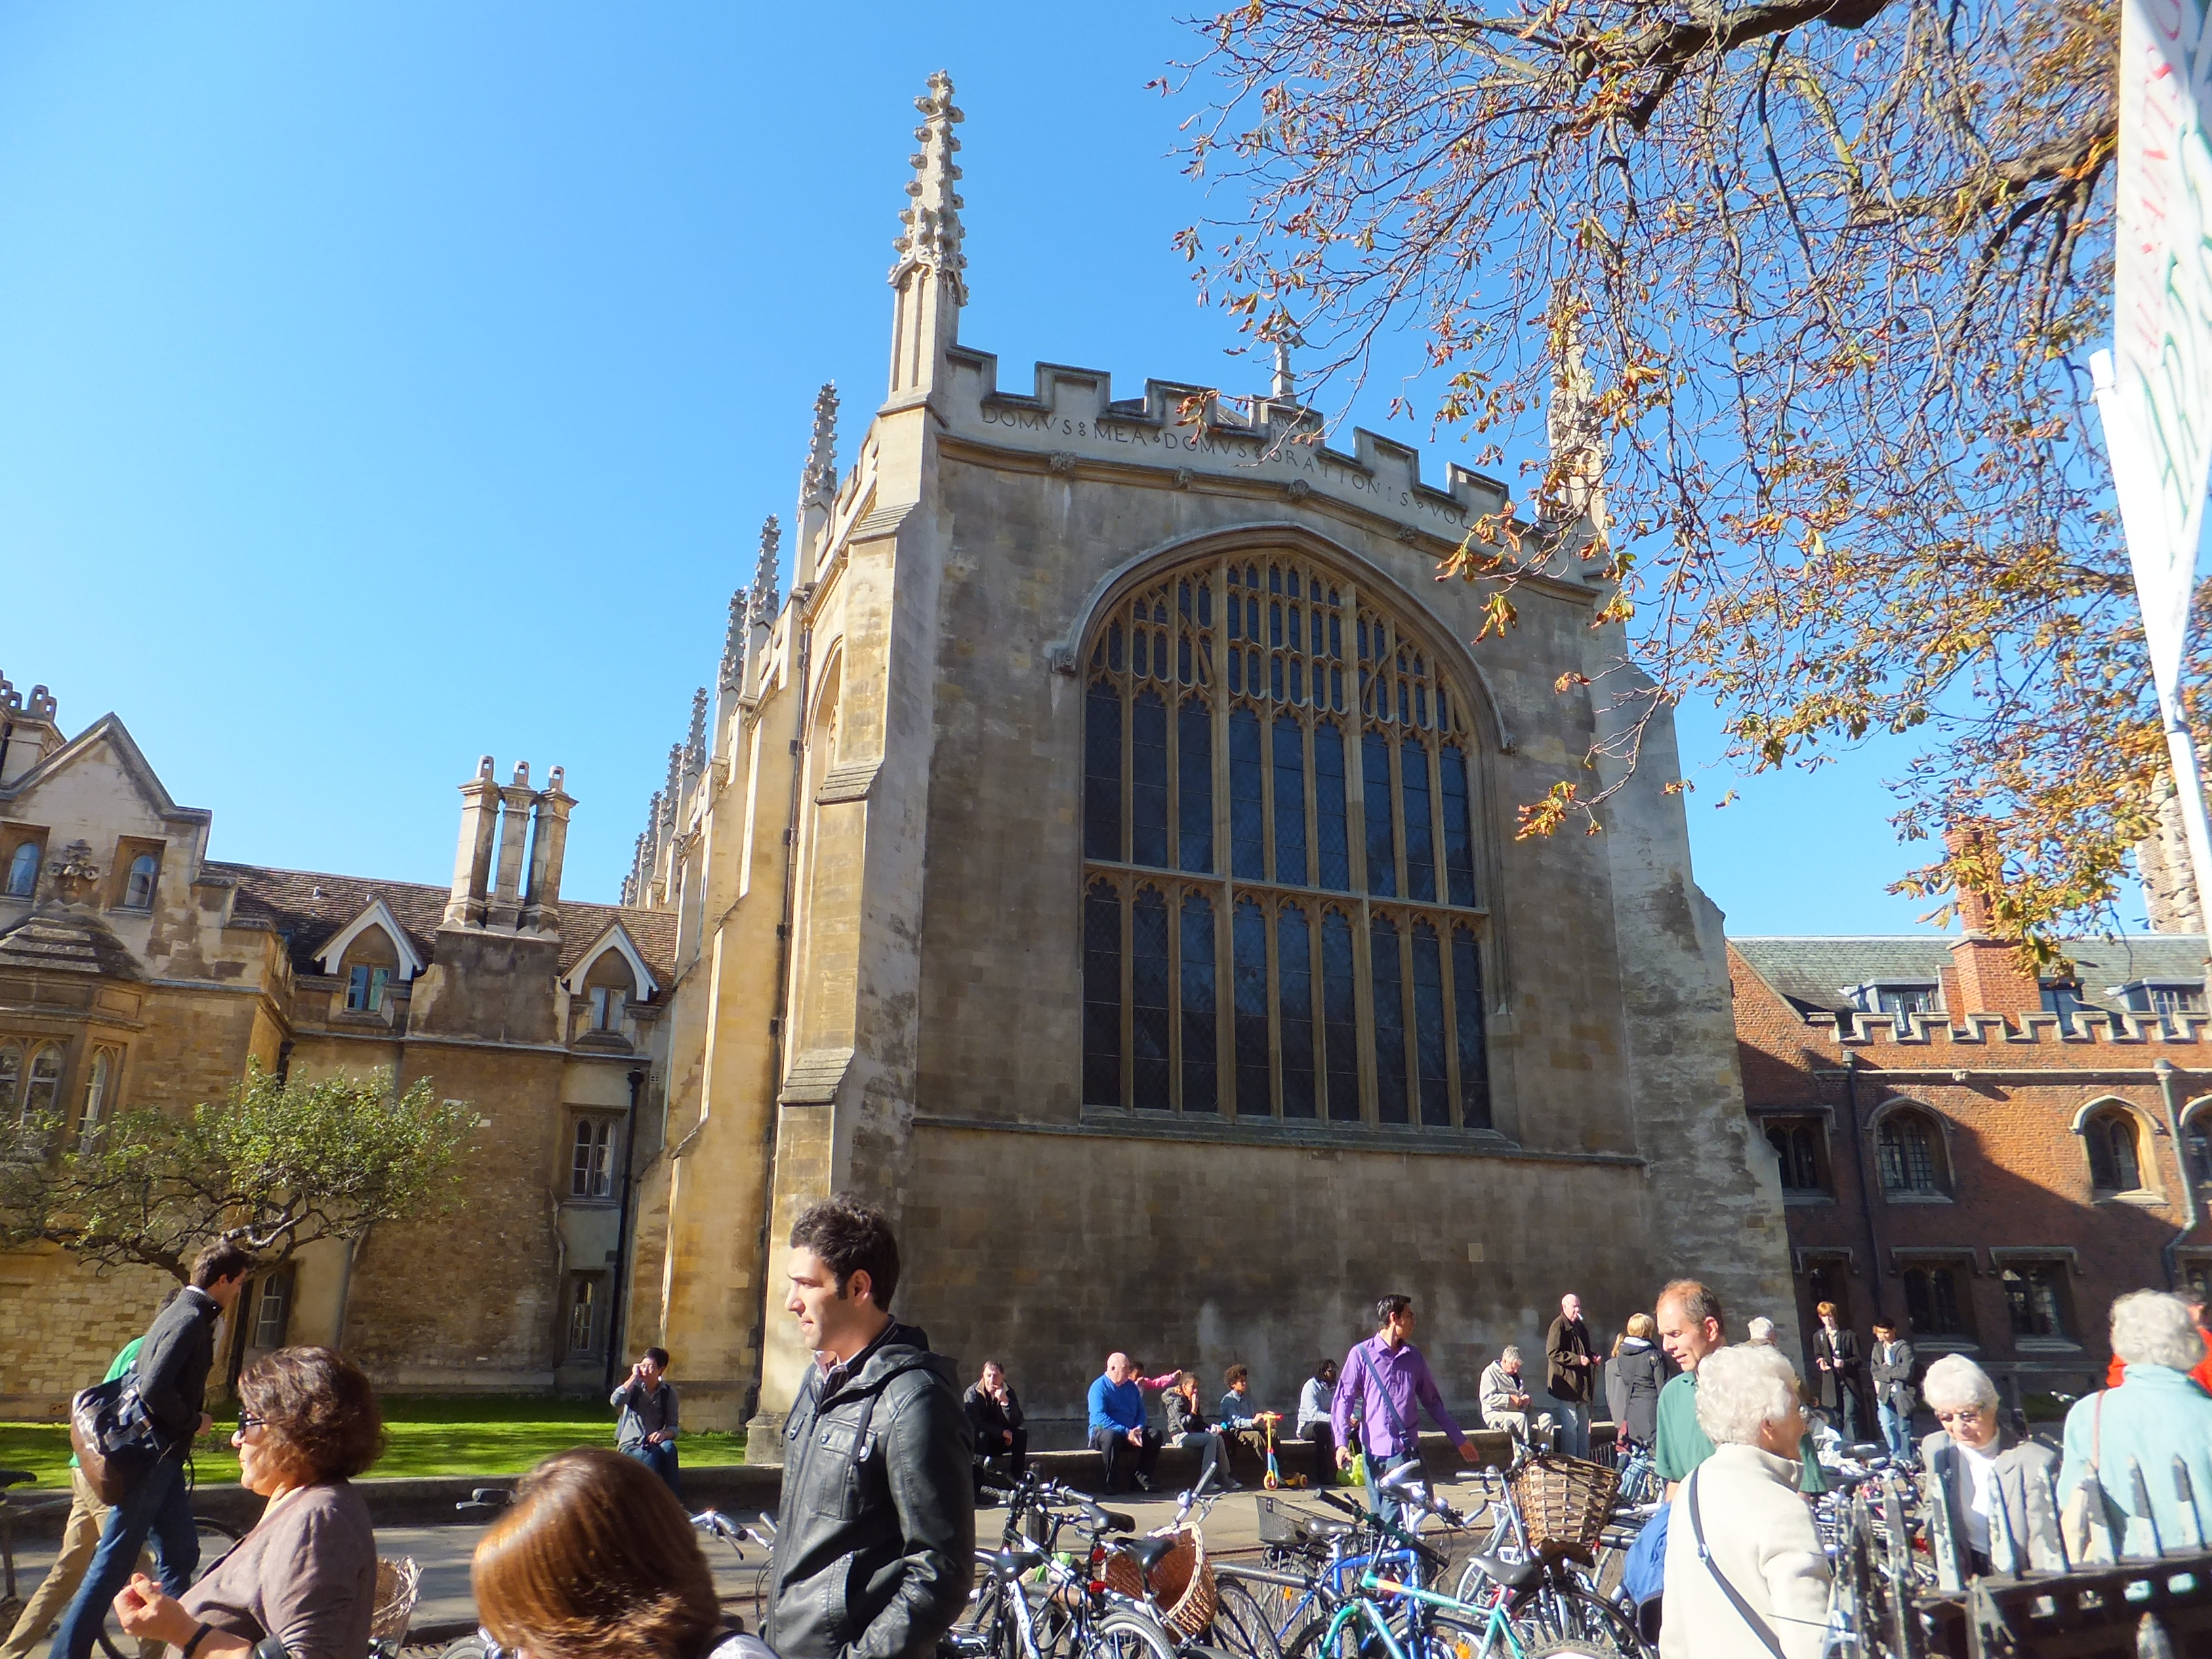 Cambridge University, where Dearlove and Halper ran an intelligence seminar. (foshie via Flickr)